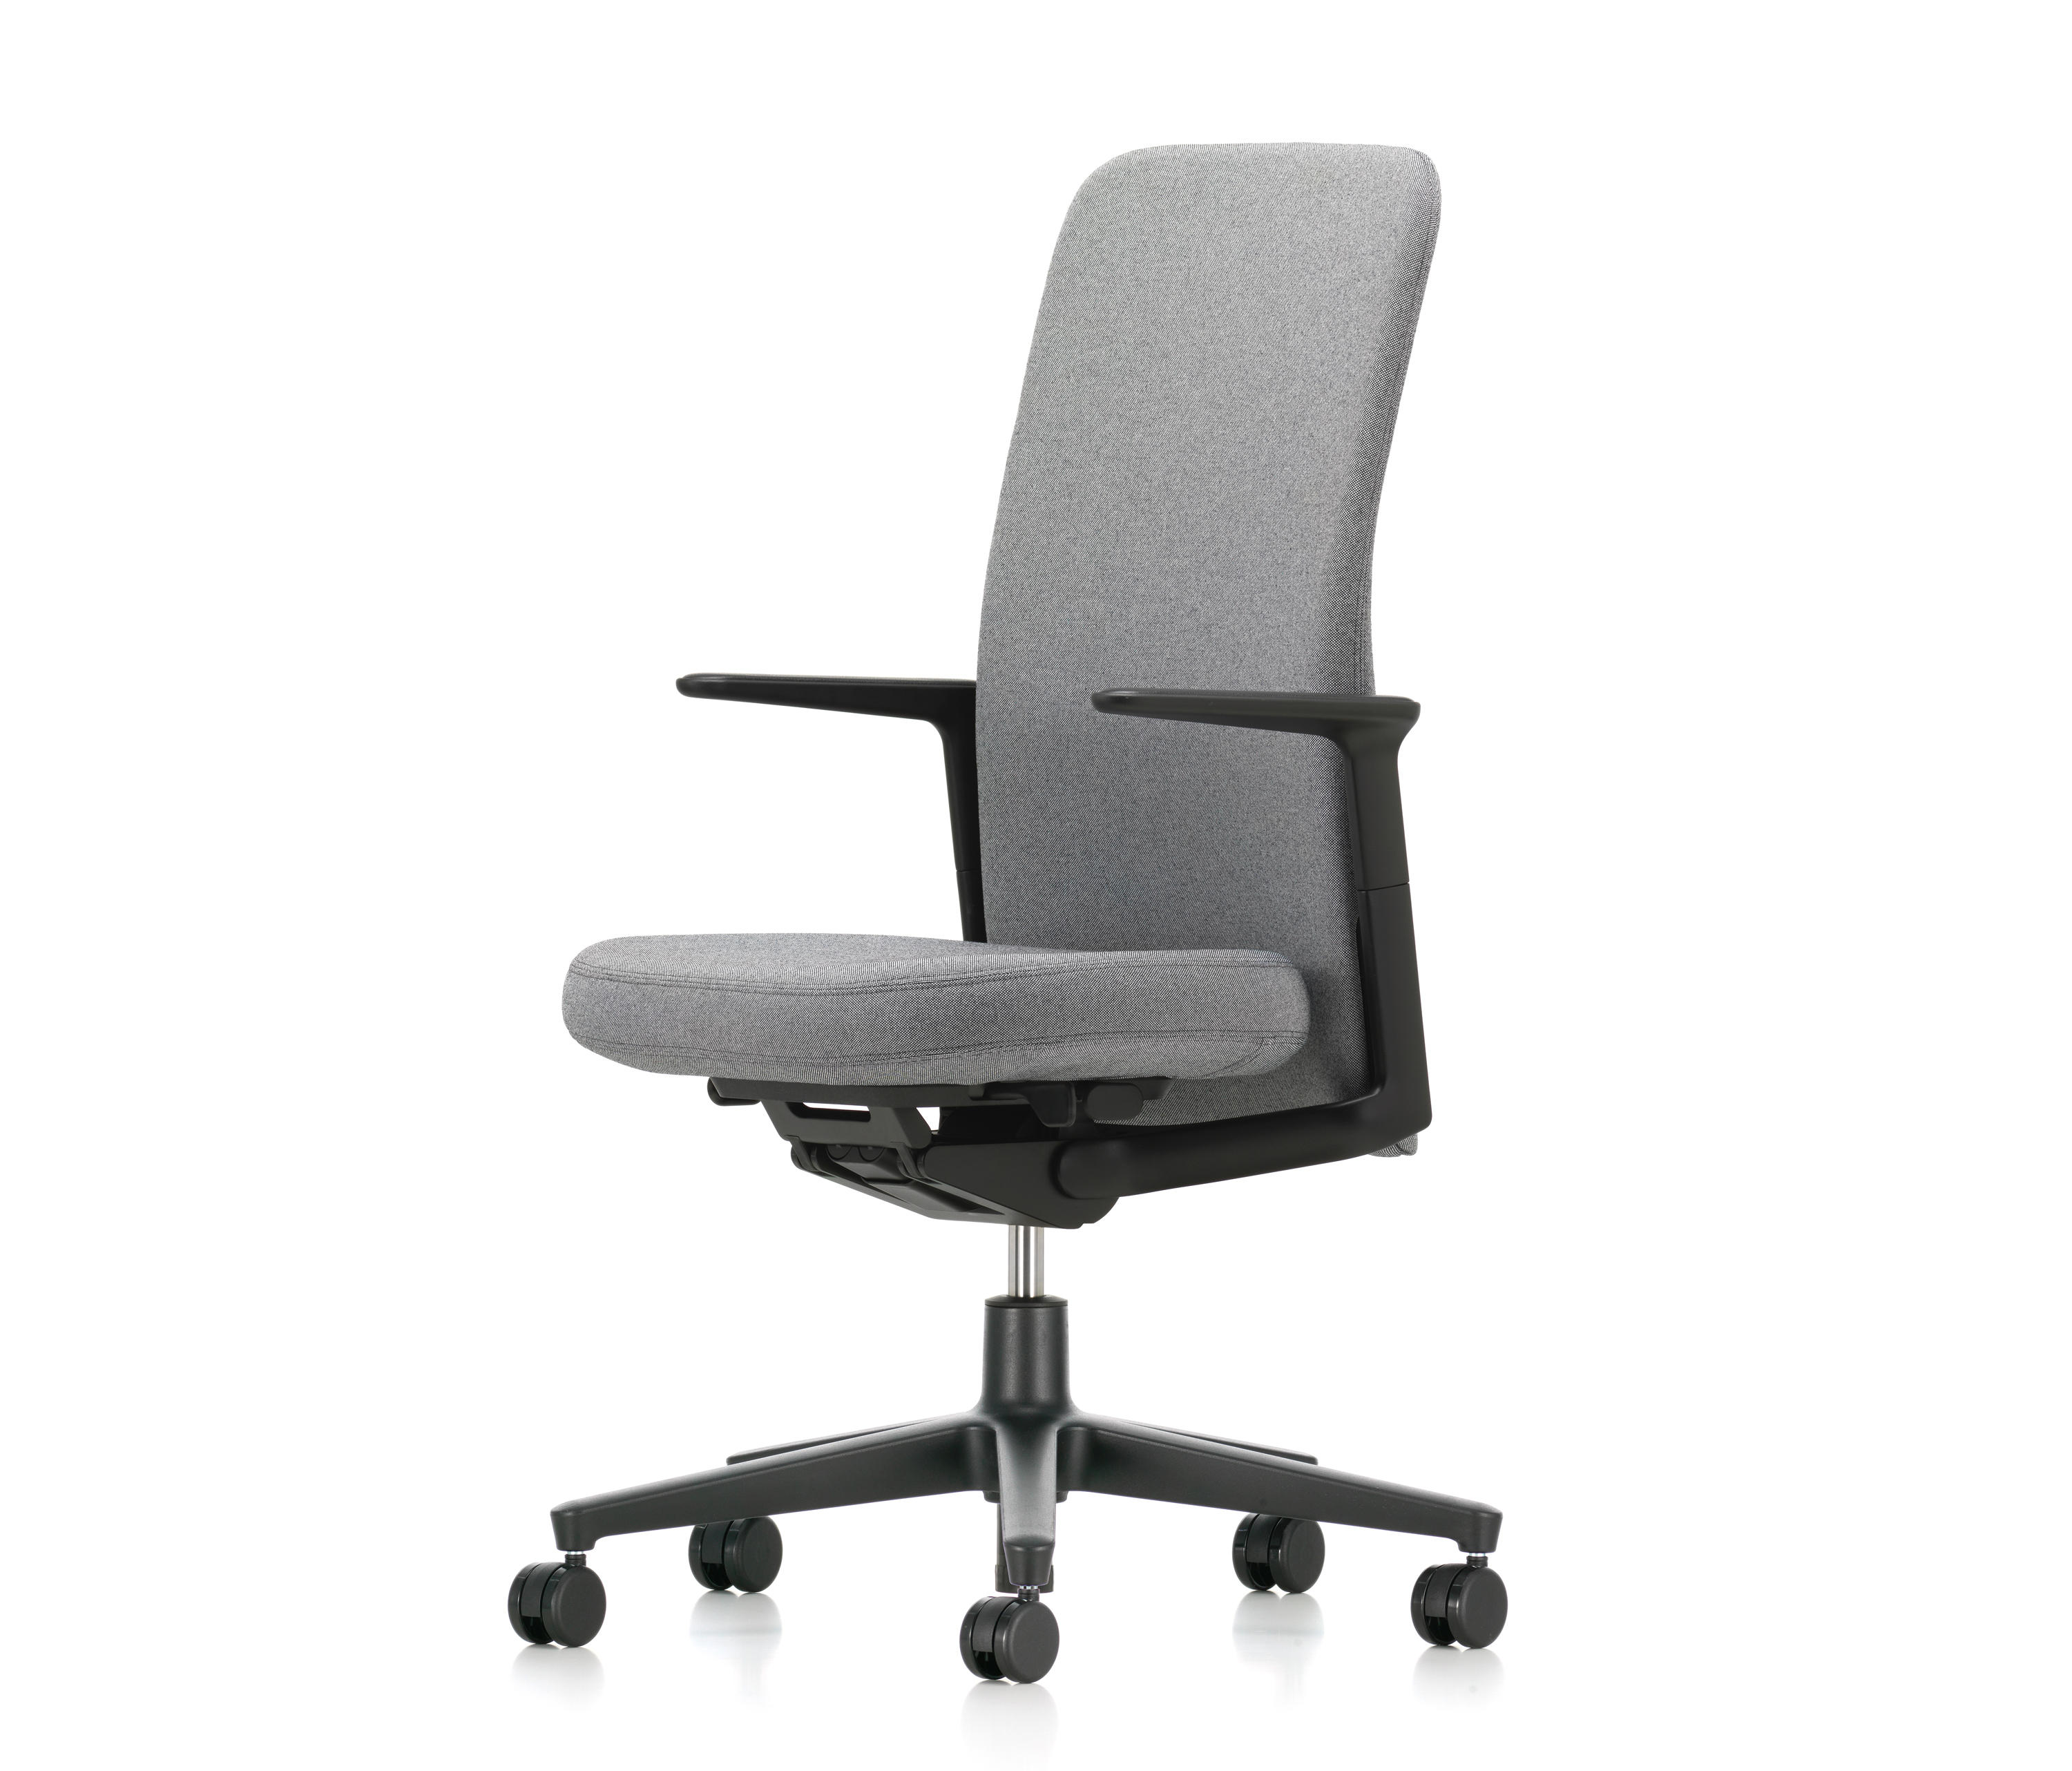 ... Pacific Chair Medium Back By Vitra | Task Chairs ... Design Ideas